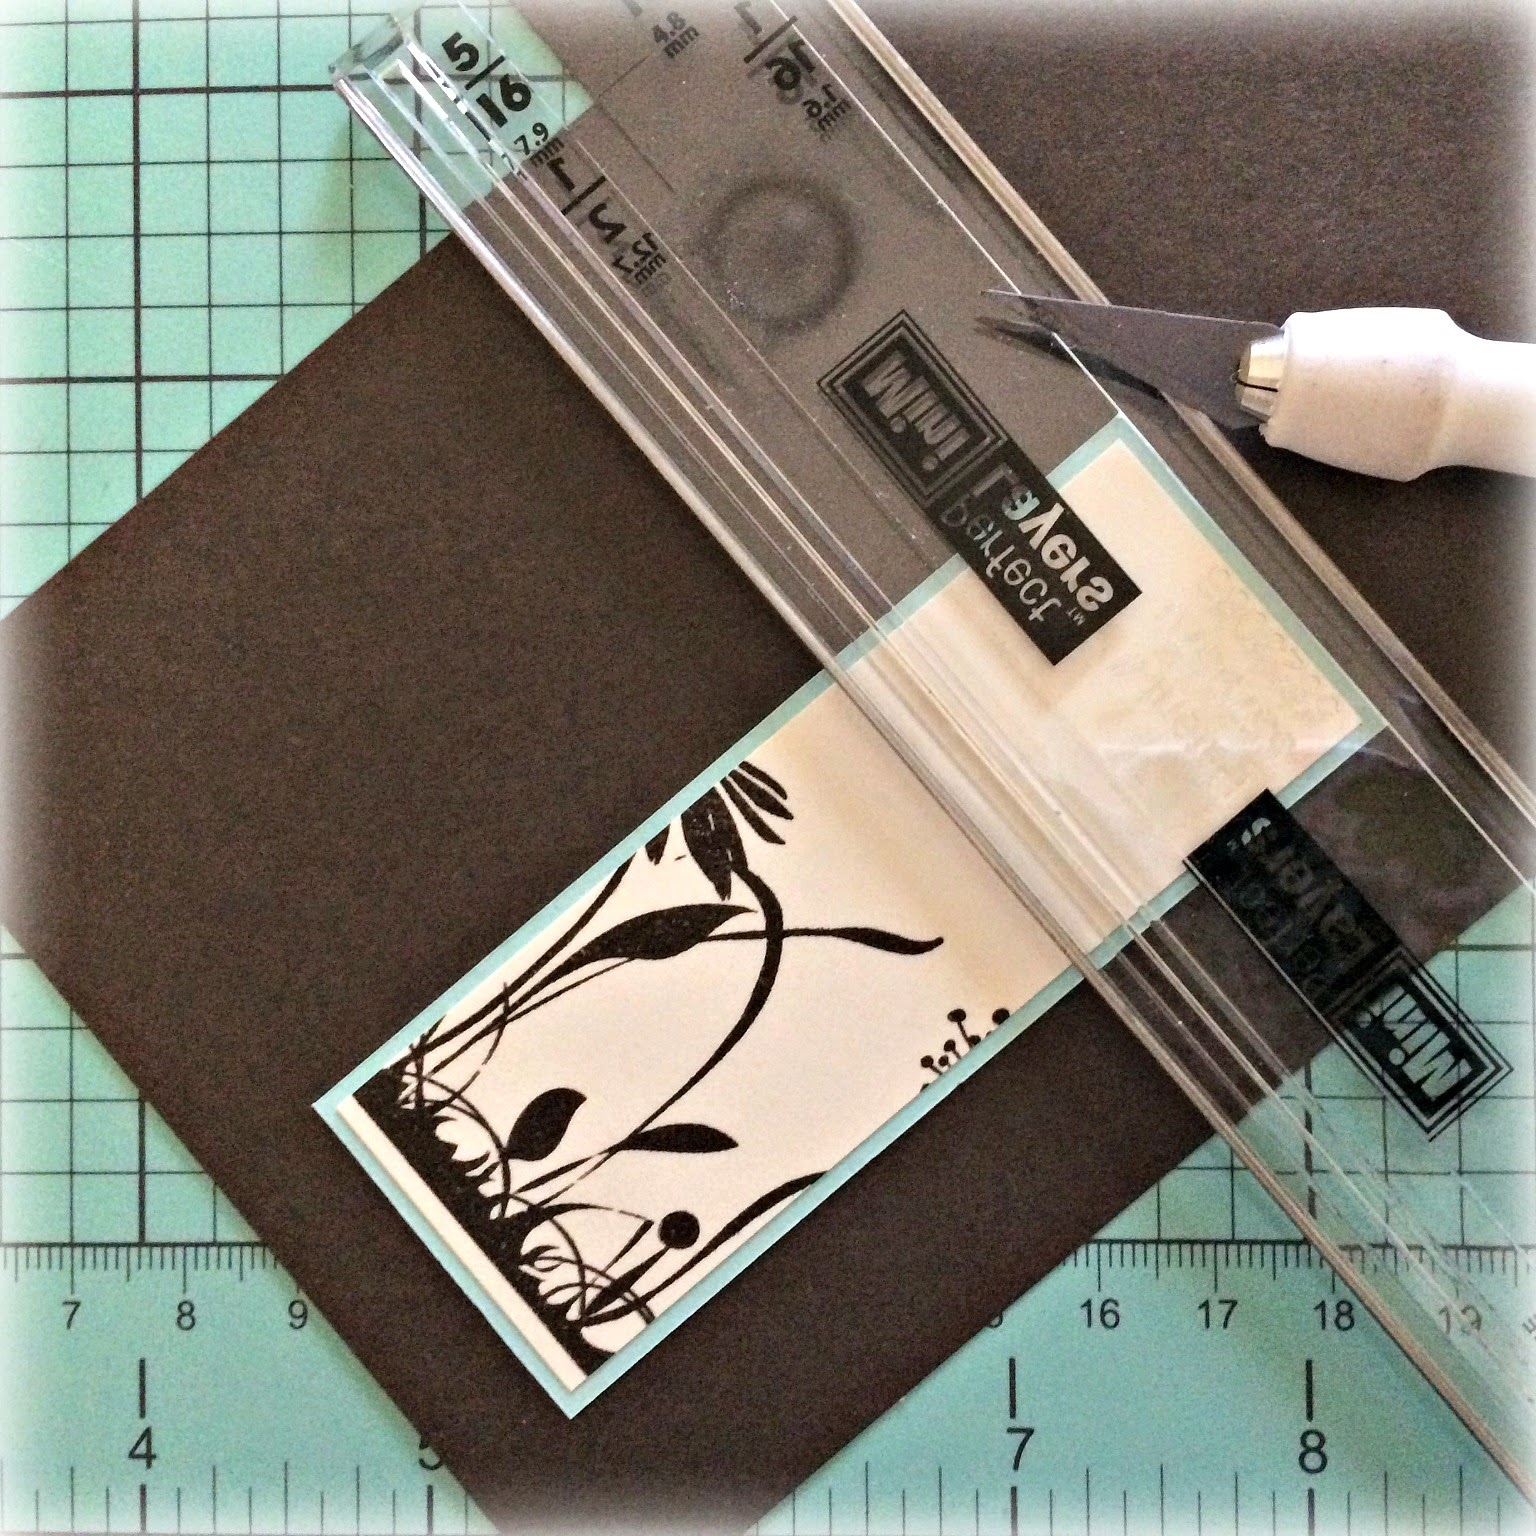 Hobby Crafting Tools